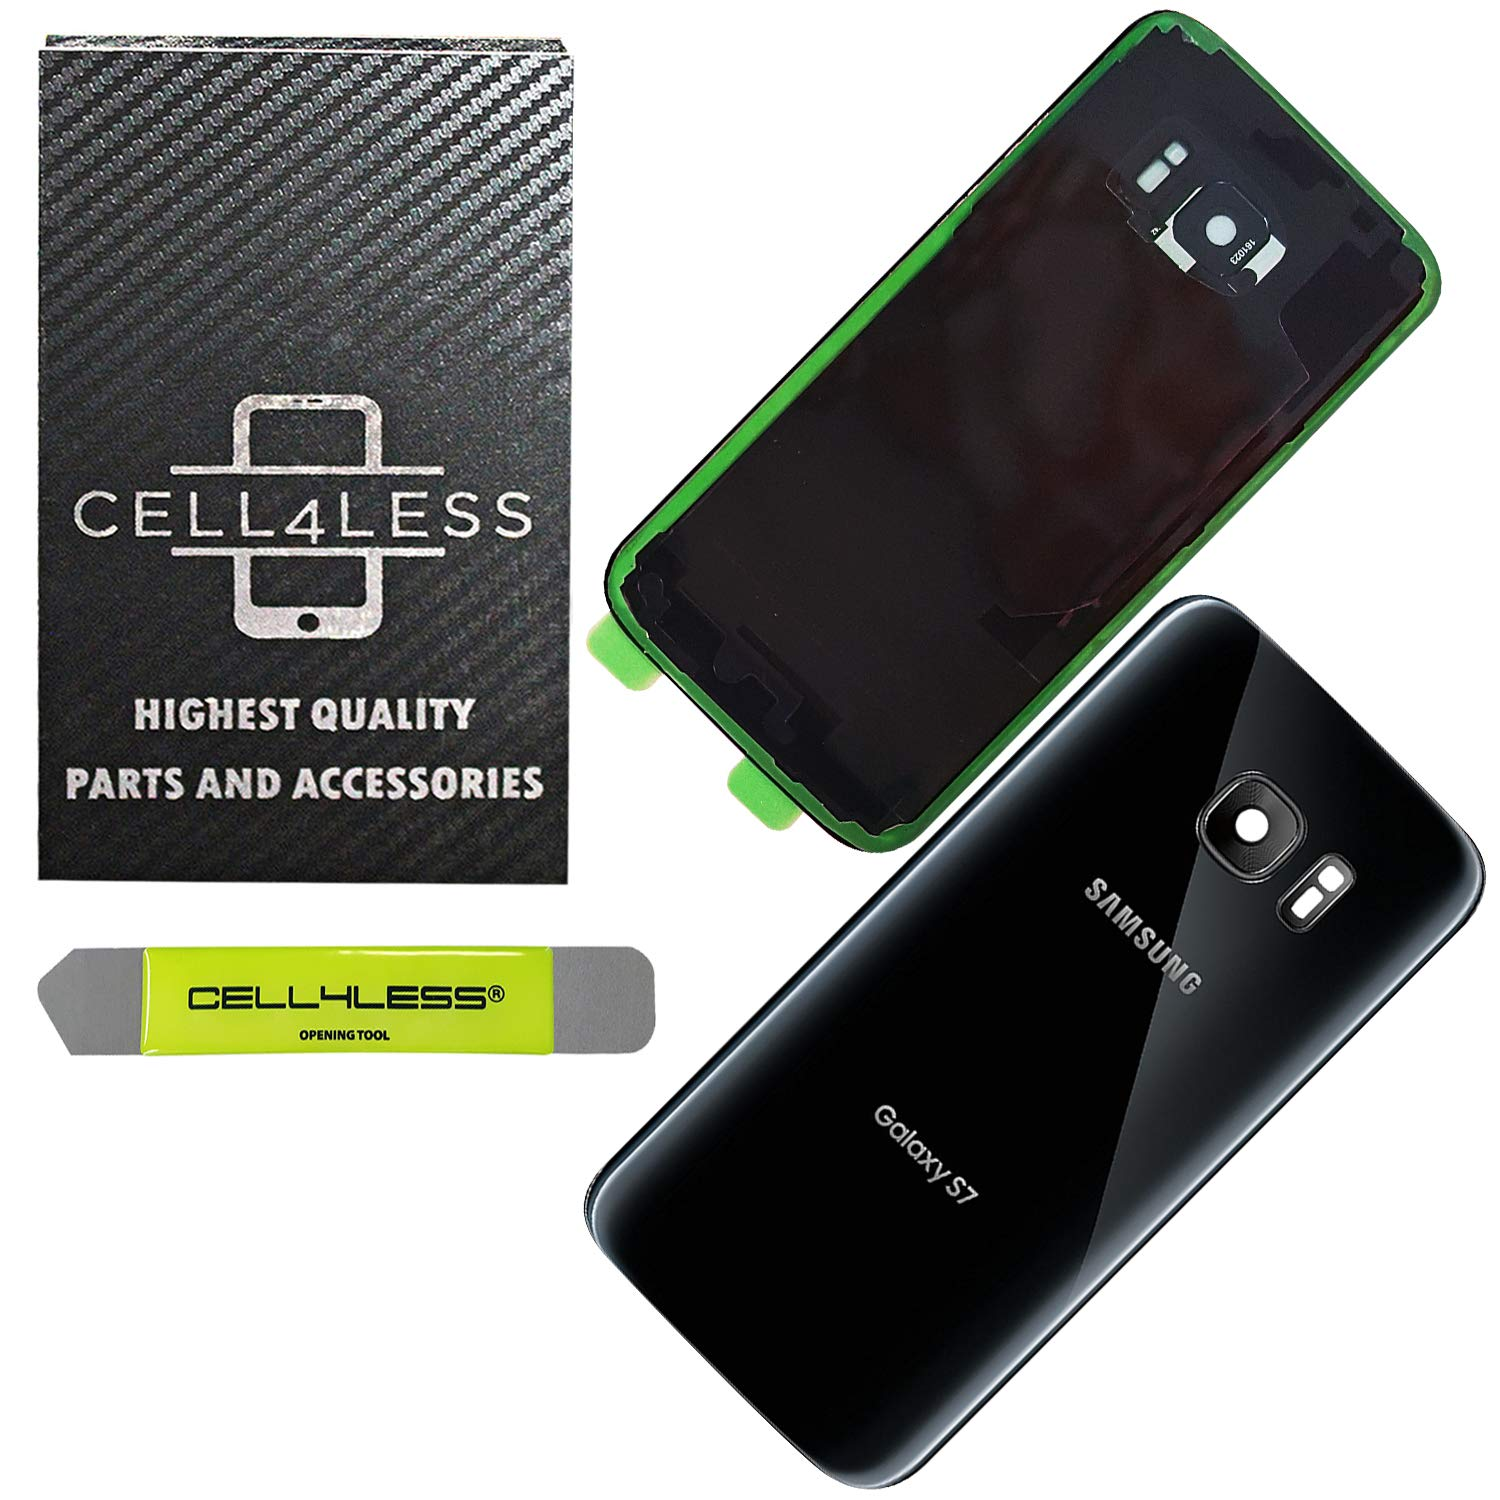 CELL4LESS Compatible Back Glass Cover Back Door w/Installed Camera Lens, Custom Removal Tool & Installed Adhesive Replacement for Samsung Galaxy S7 - All Models G930 - OEM Replacement (Black)